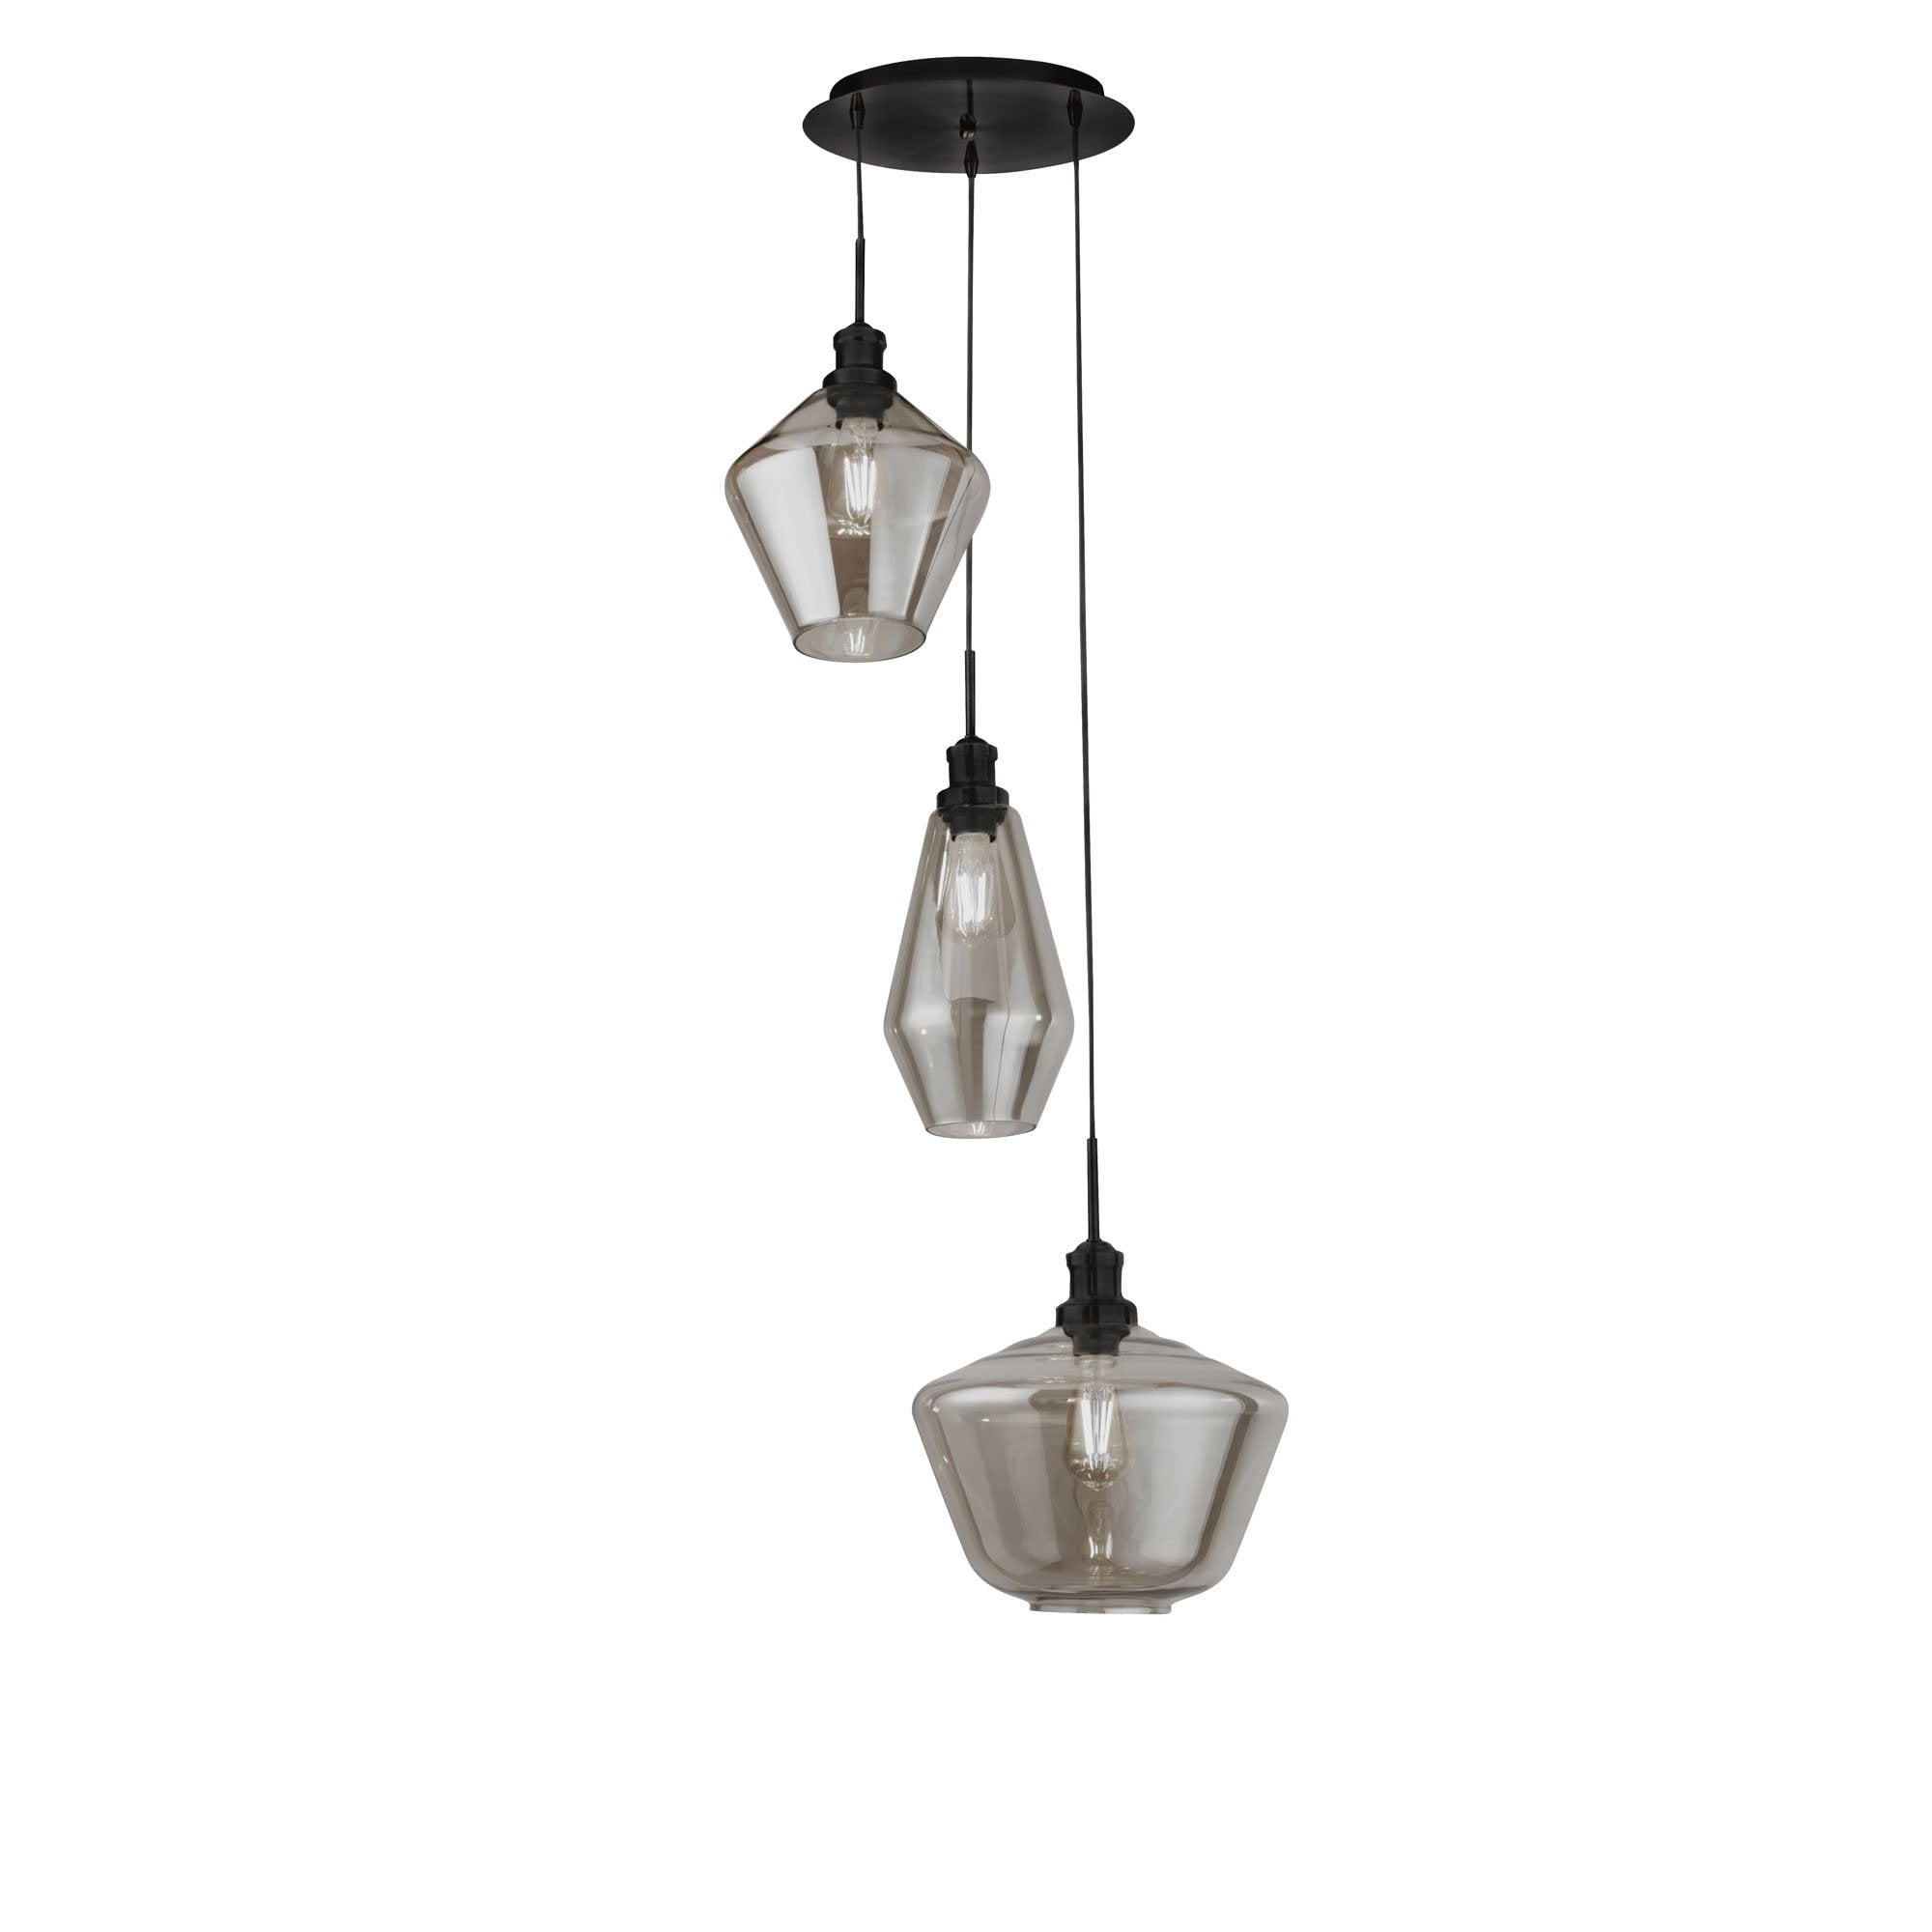 3 Light Multi Drop Ceiling Pendant With 3 Styles Of Smoked Glass